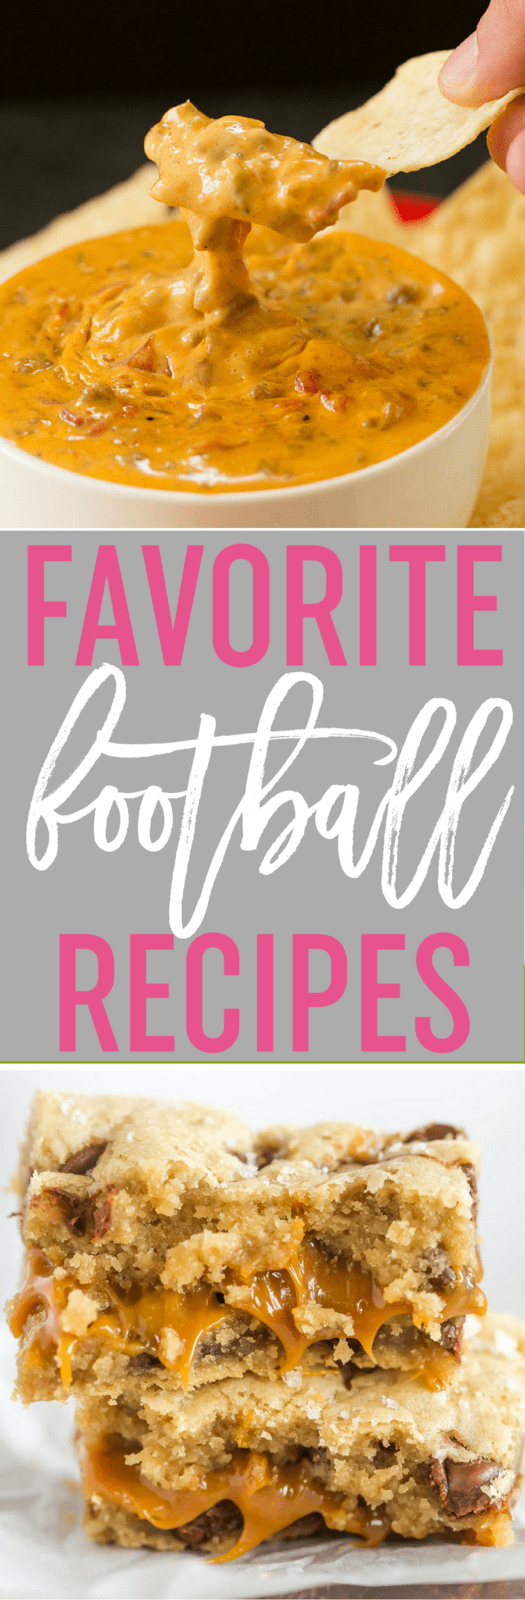 80 of My Favorite Football Food Recipes - Lots of recipes perfect for football watching including dips, appetizers, savory snacks, legit meals, and of course - sweets!